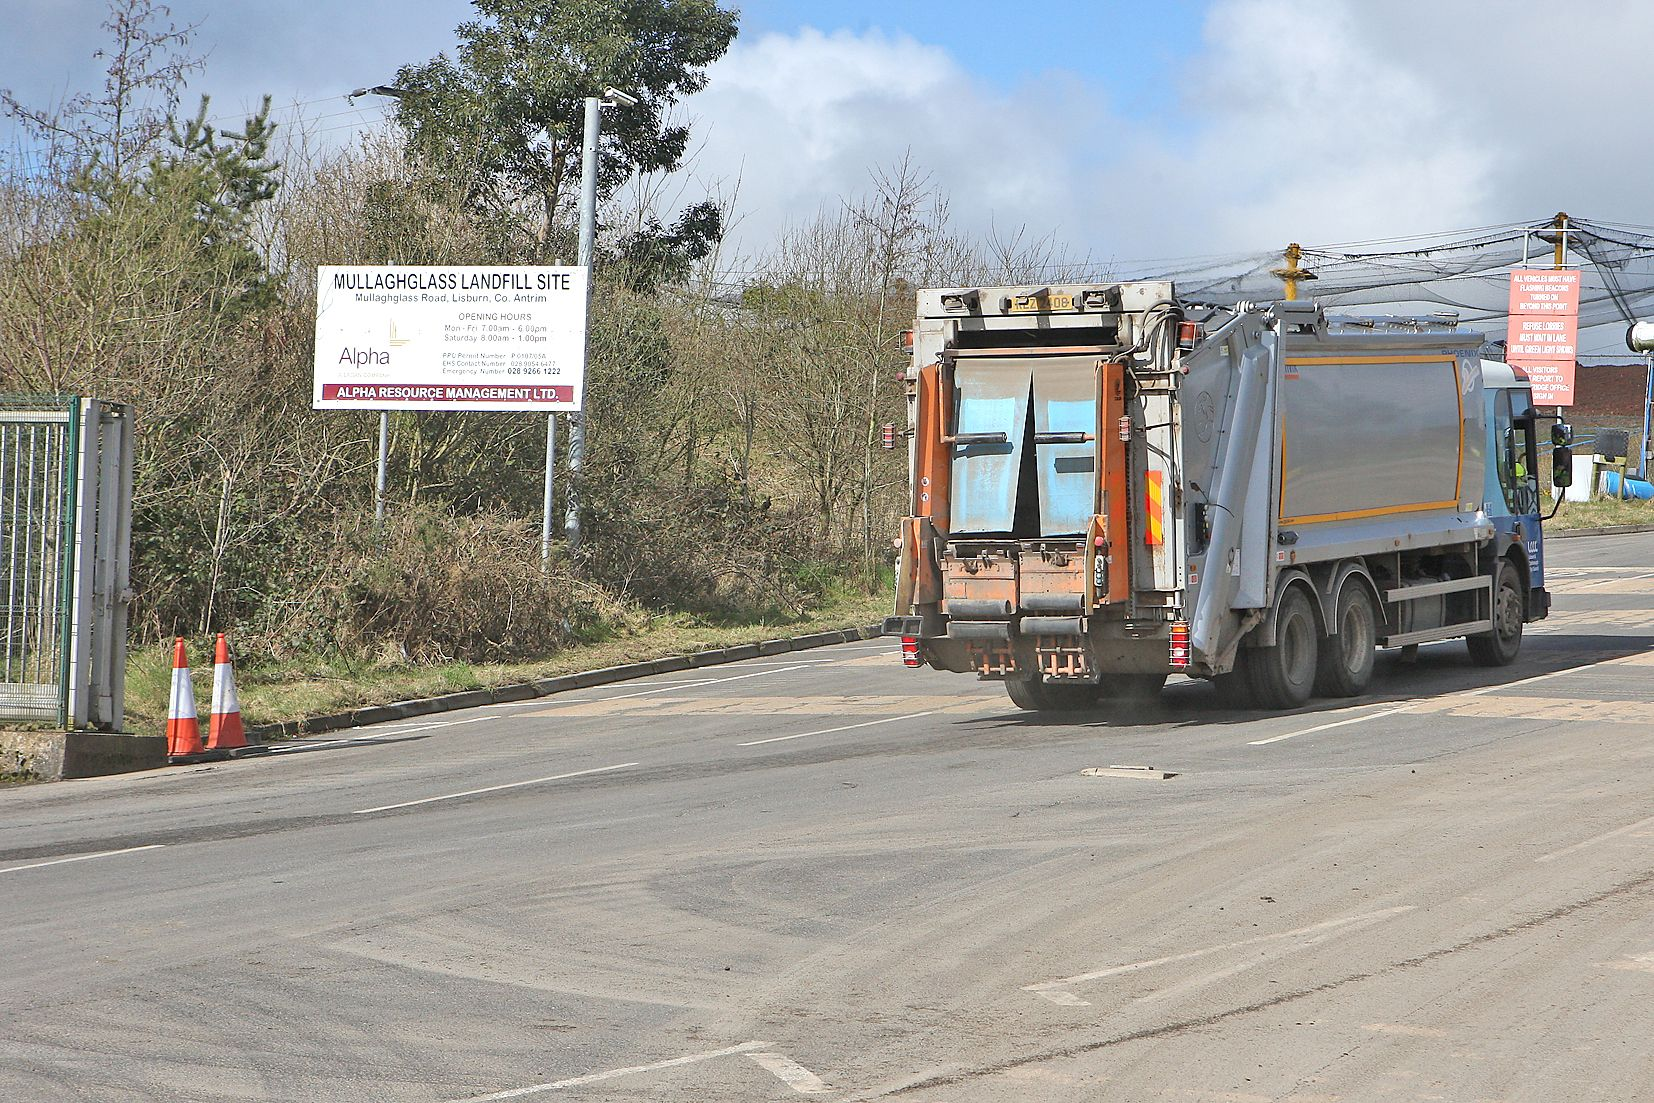 ACTION: Belfast City Council have served an Abatement Notice on the owners of the Mullaghglass landfill site